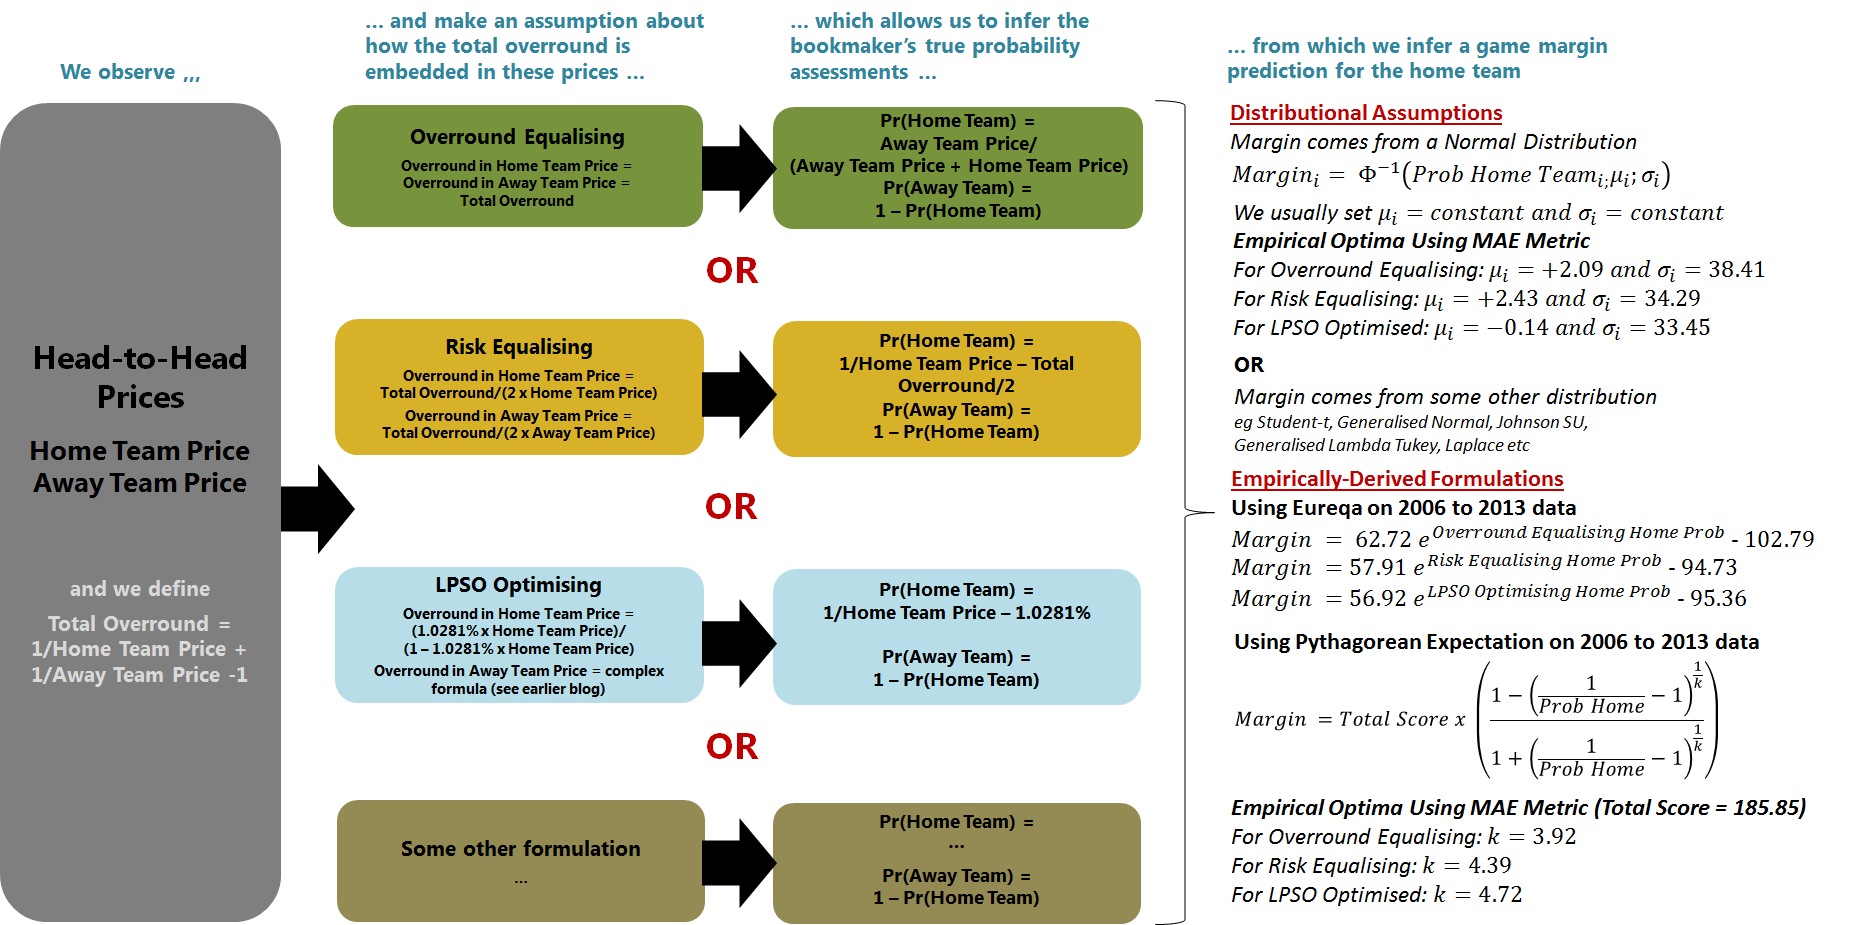 Framework Linking Head-to-Head Prices to Margin Assumptions.png